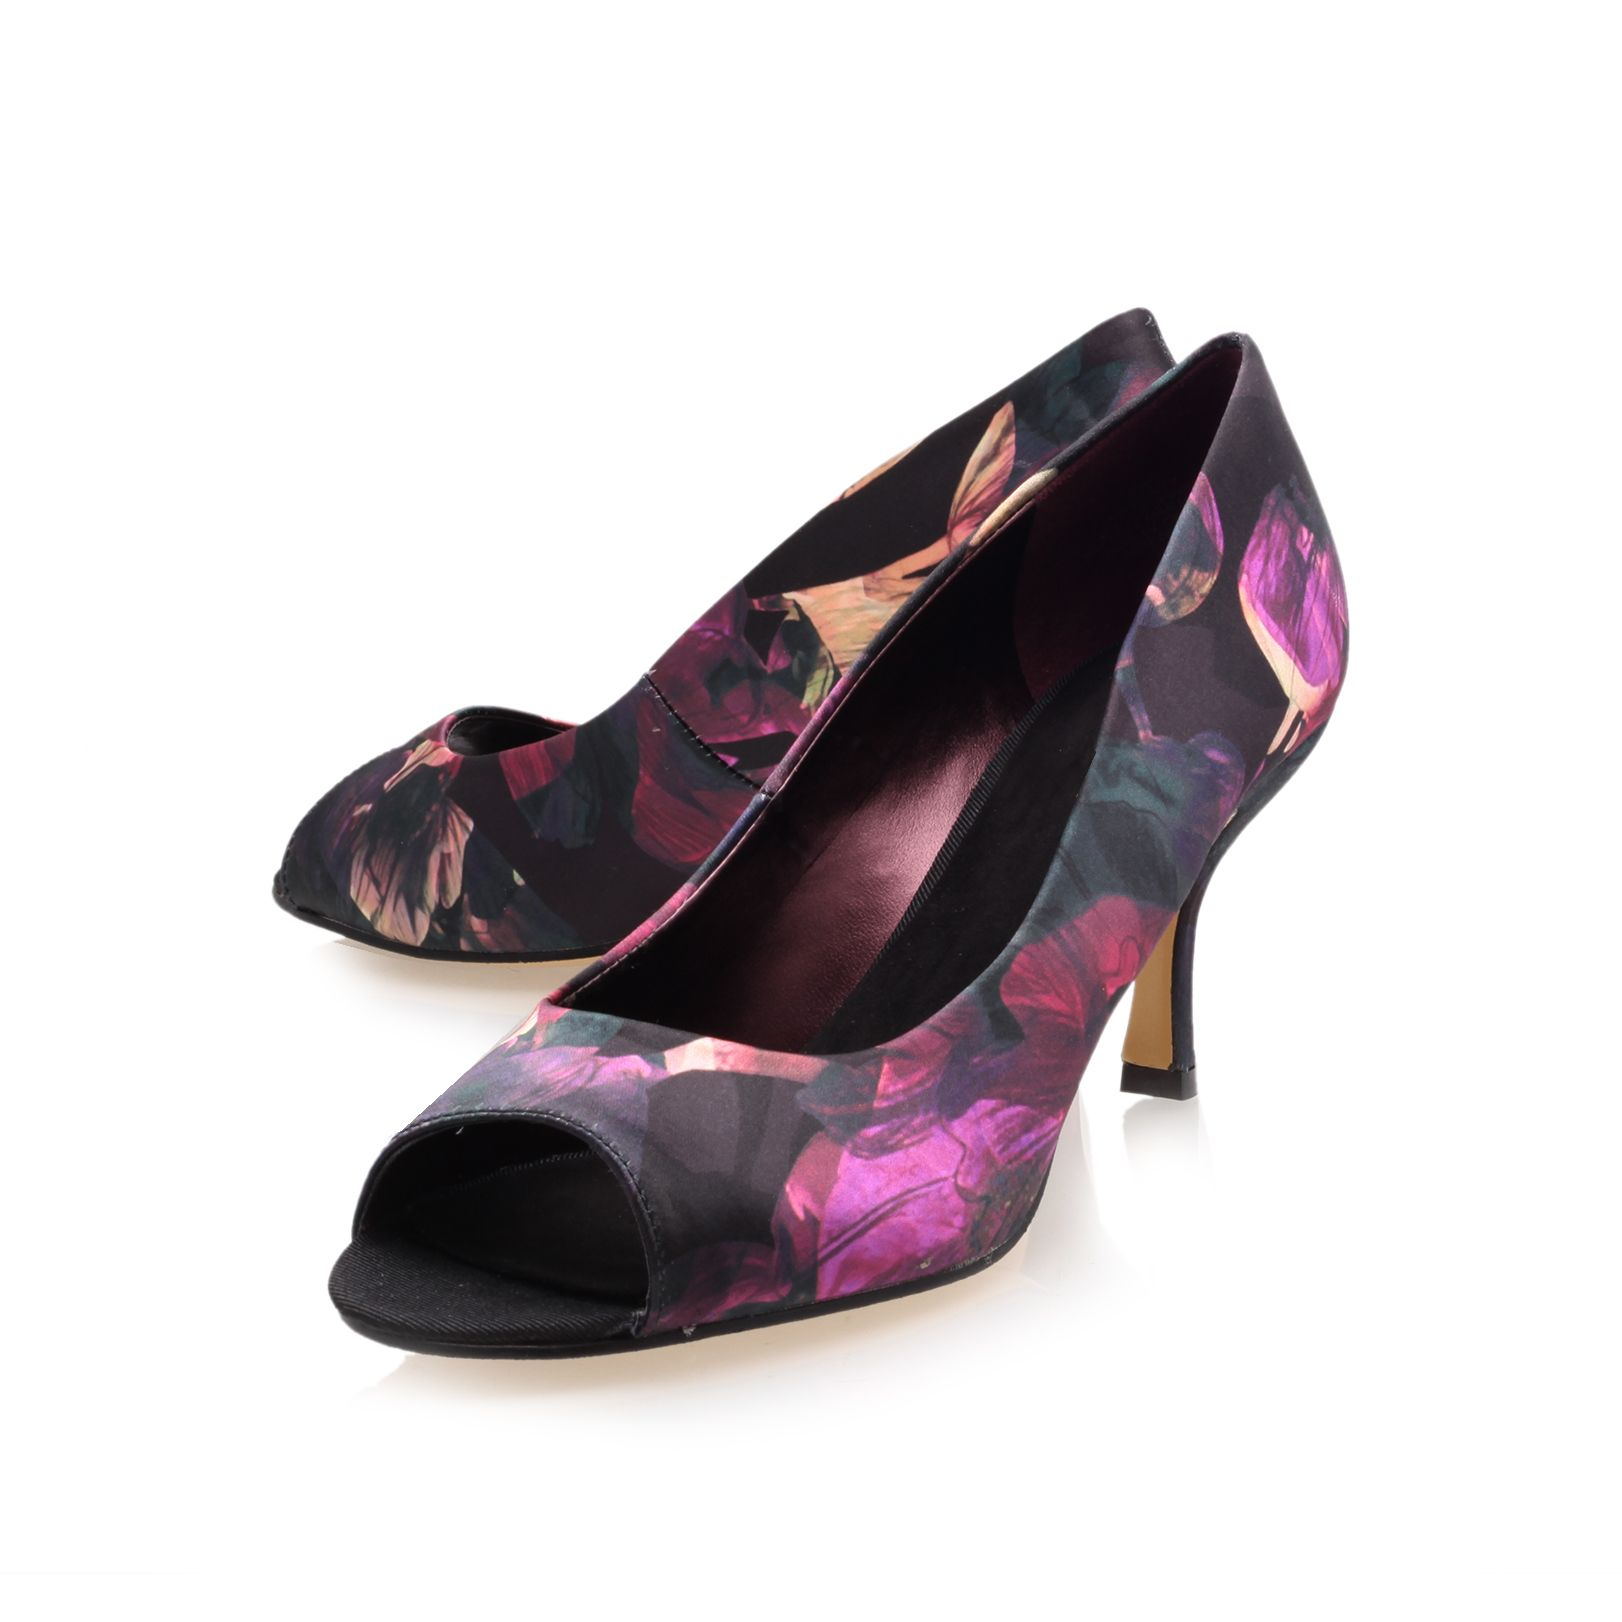 Quinty2 patterned heeled shoes